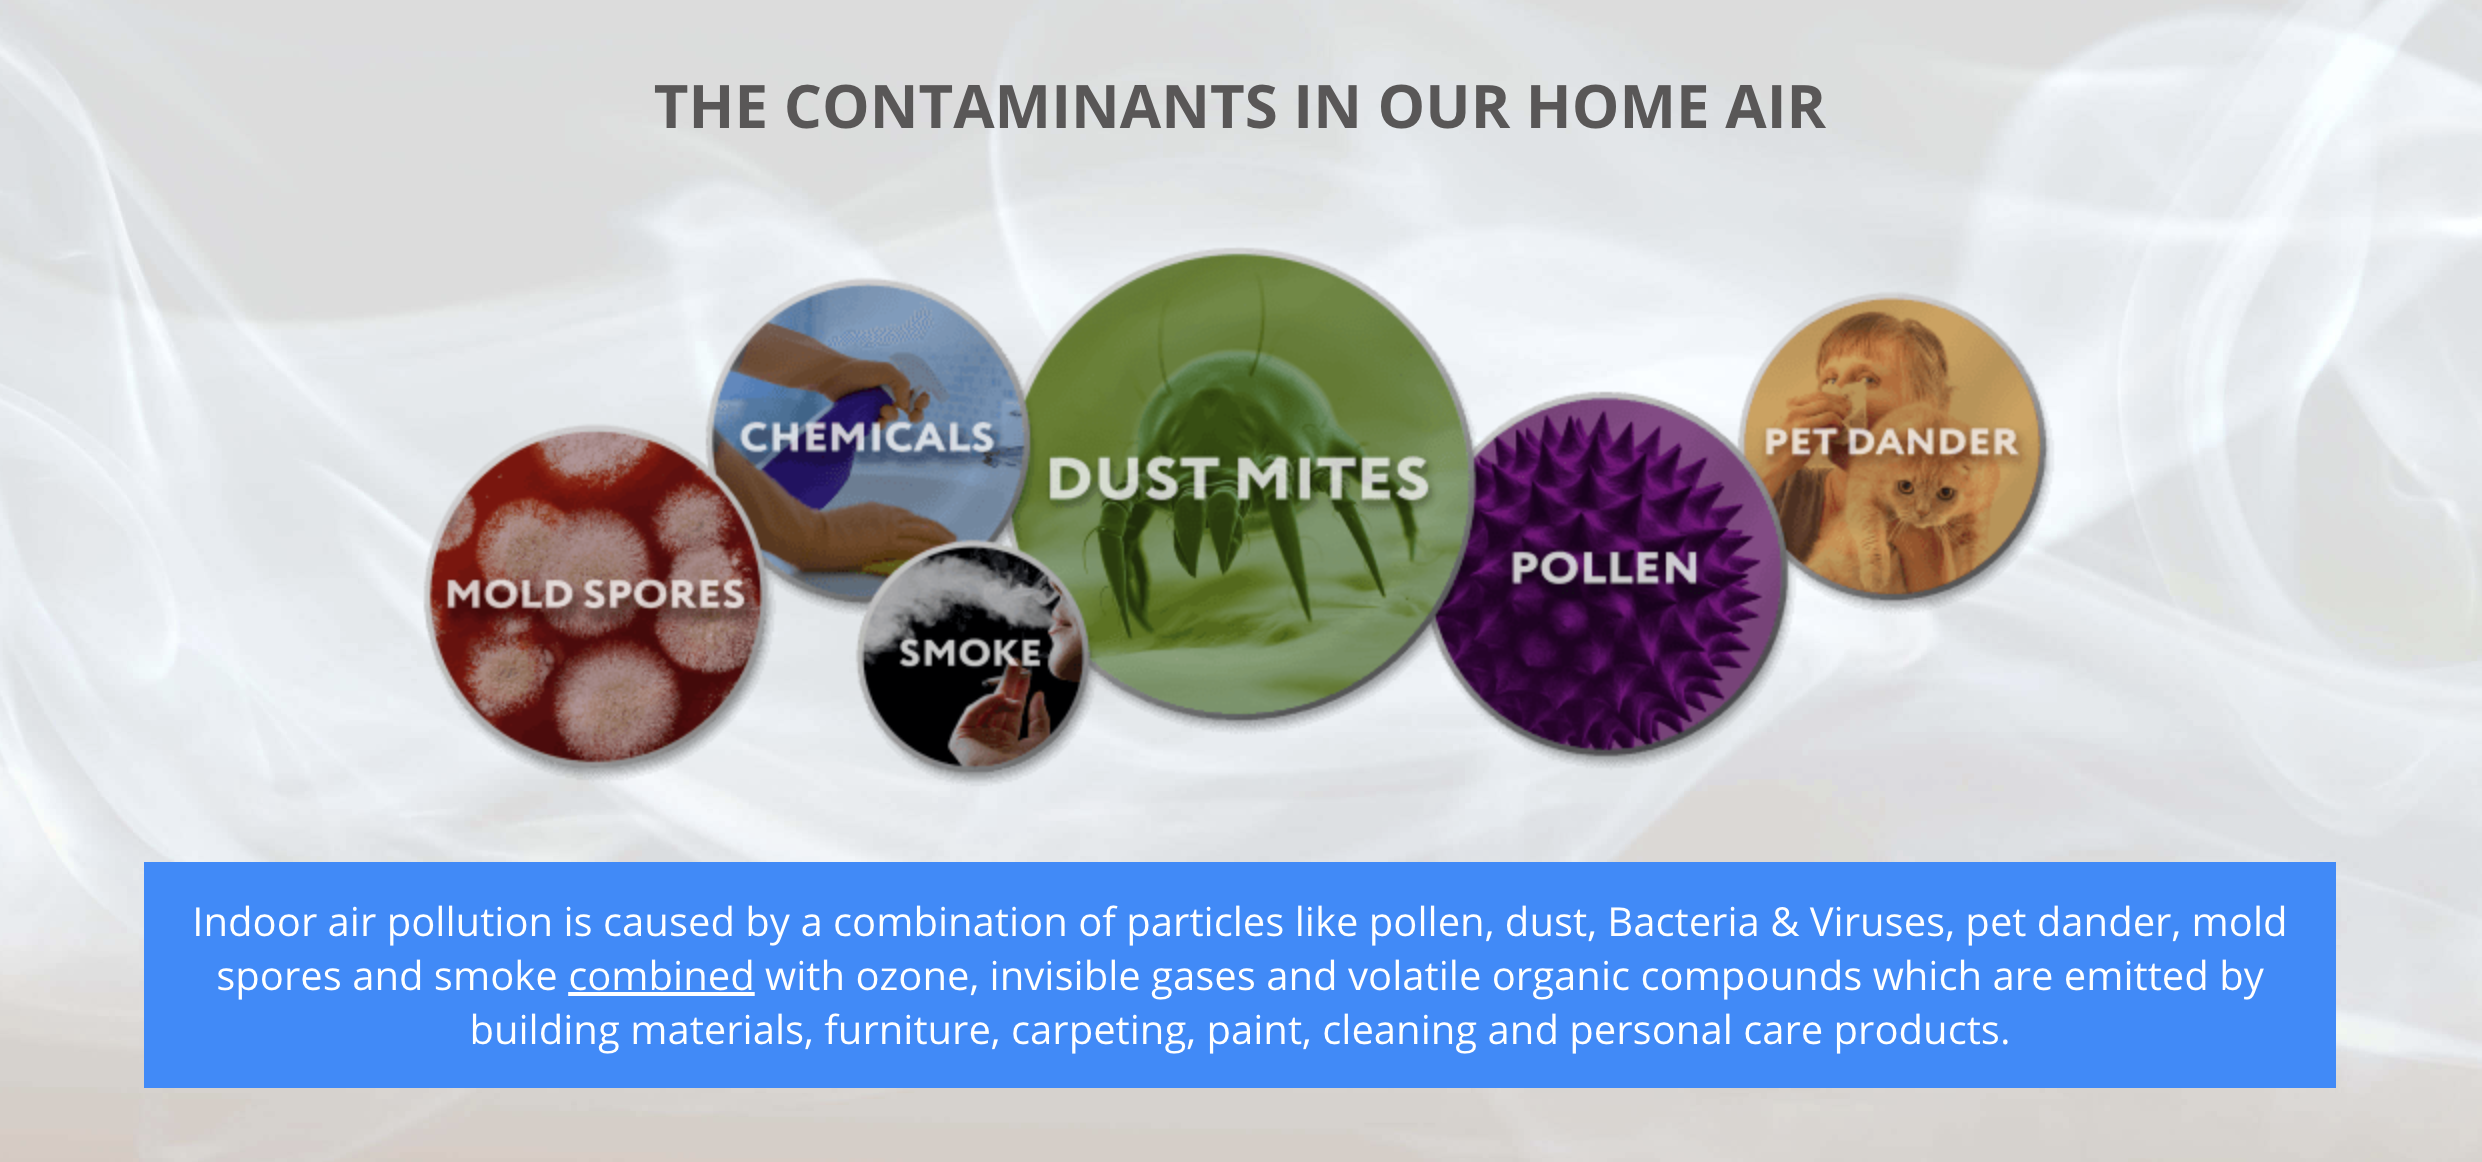 The contaminants in our home air diagram on AirDoctor's website